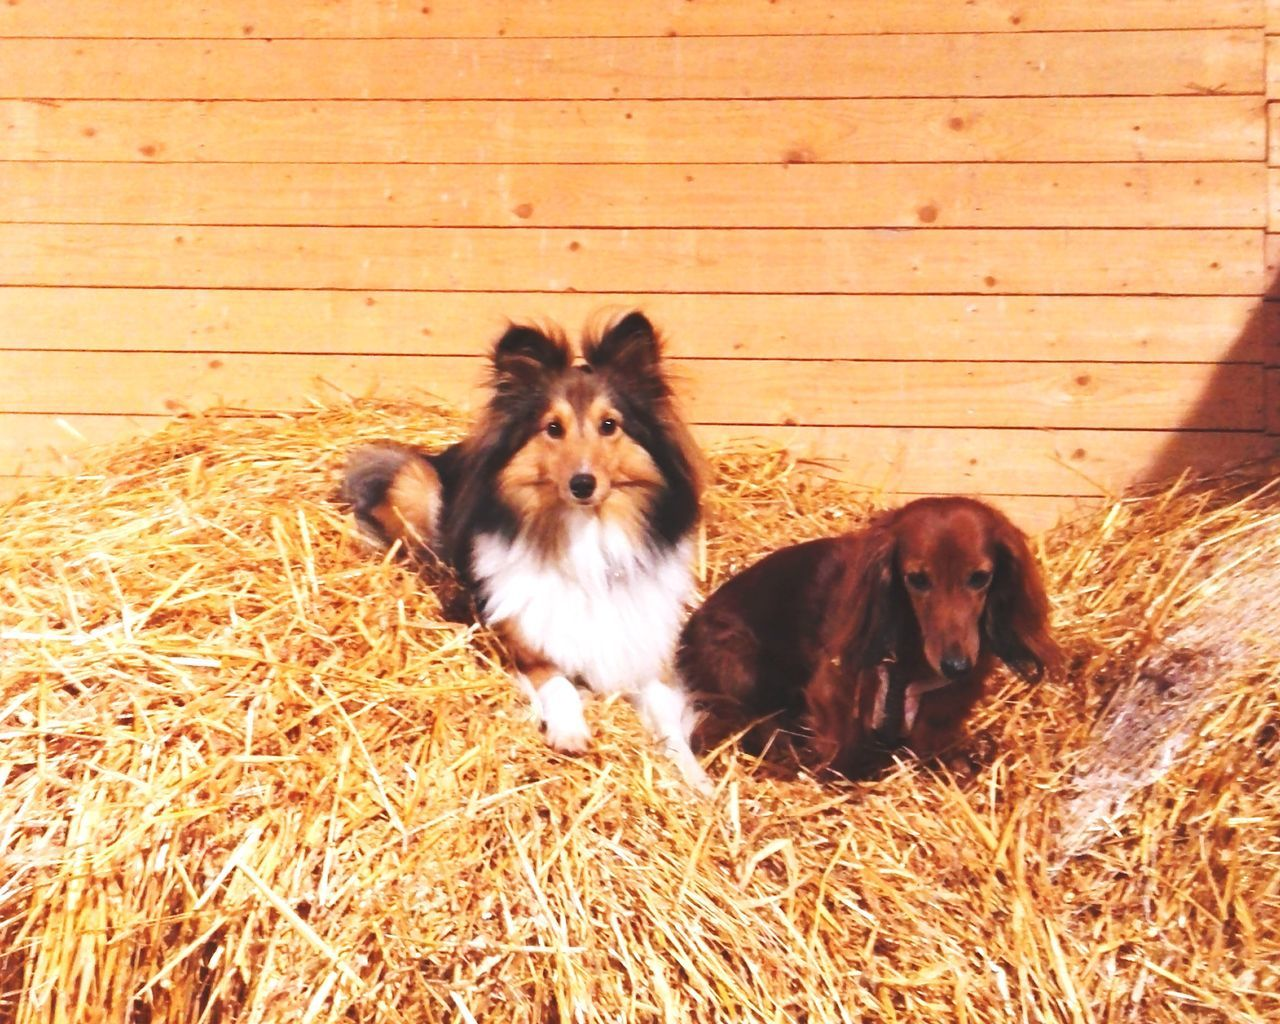 Animal Themes Domestic Animals No People Pets Outdoors Nature Sheltie Shetland Sheepdog Daschund Barnlife Stable Mammal Day First Eyeem Photo